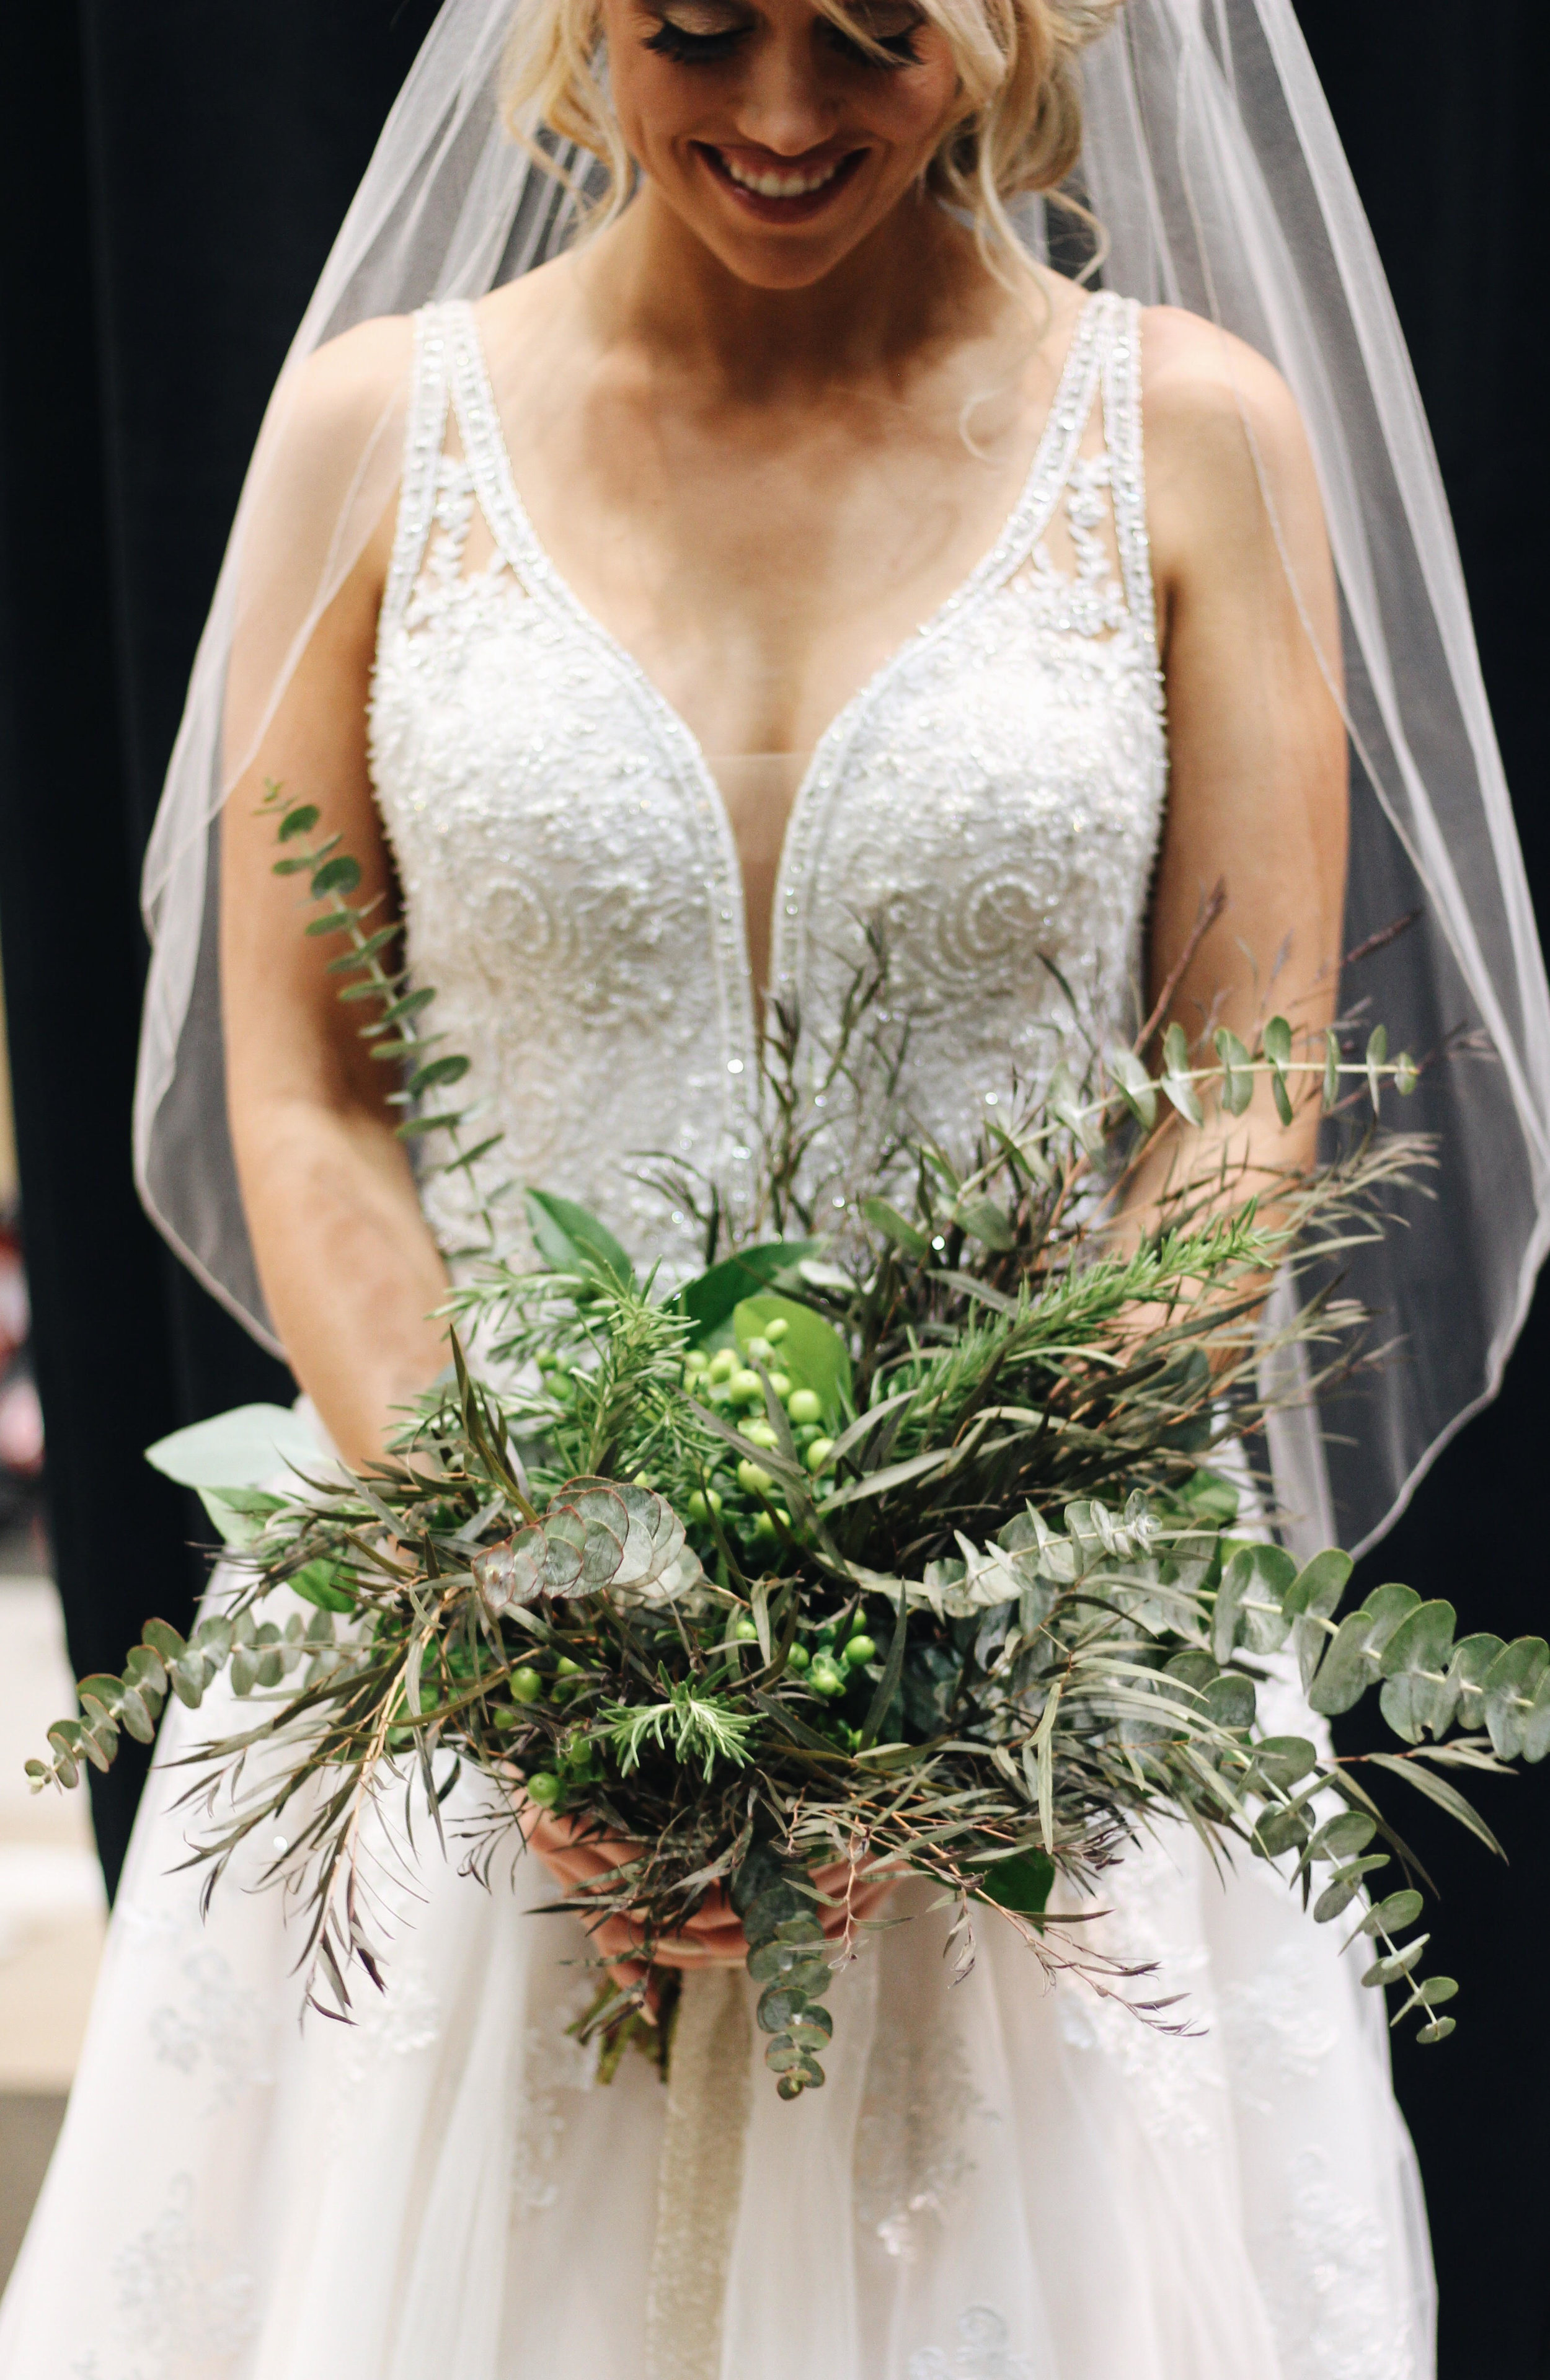 Bride holding flowers Wedding Bouquet by Blue Ivy Flowers, Chattanooga, TN